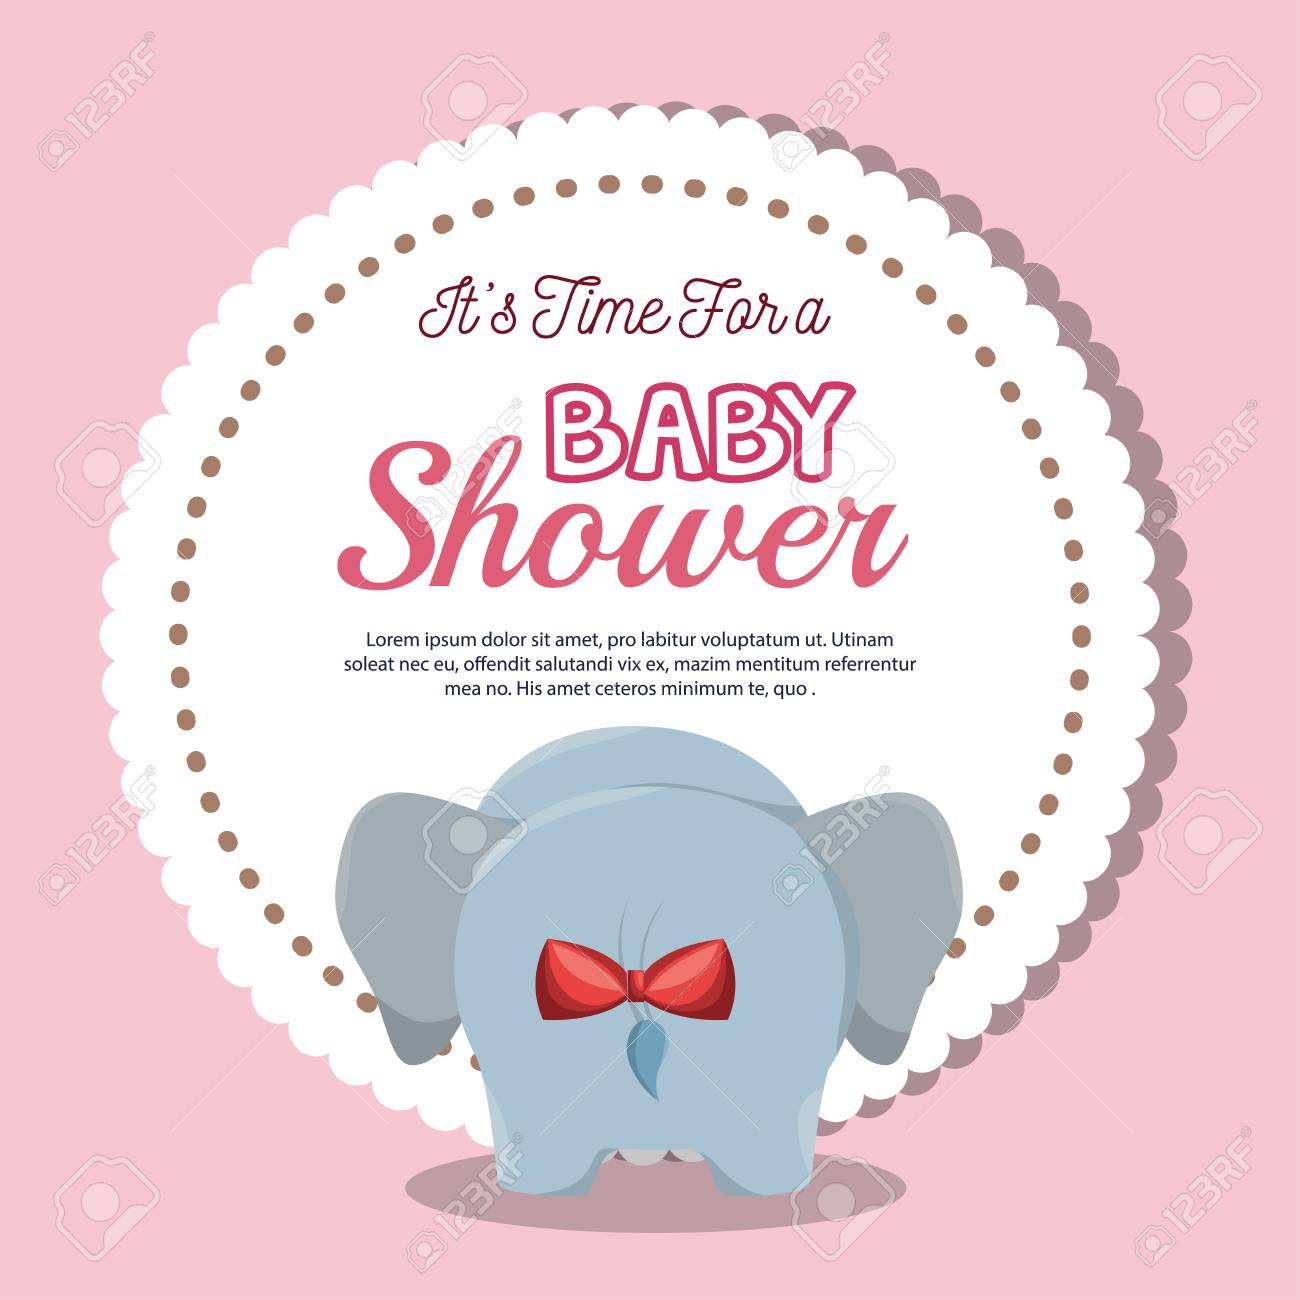 Baby shower invitation with cute animal vector illustration design baby shower invitation with cute animal vector illustration design banco de imagens 64337972 stopboris Image collections